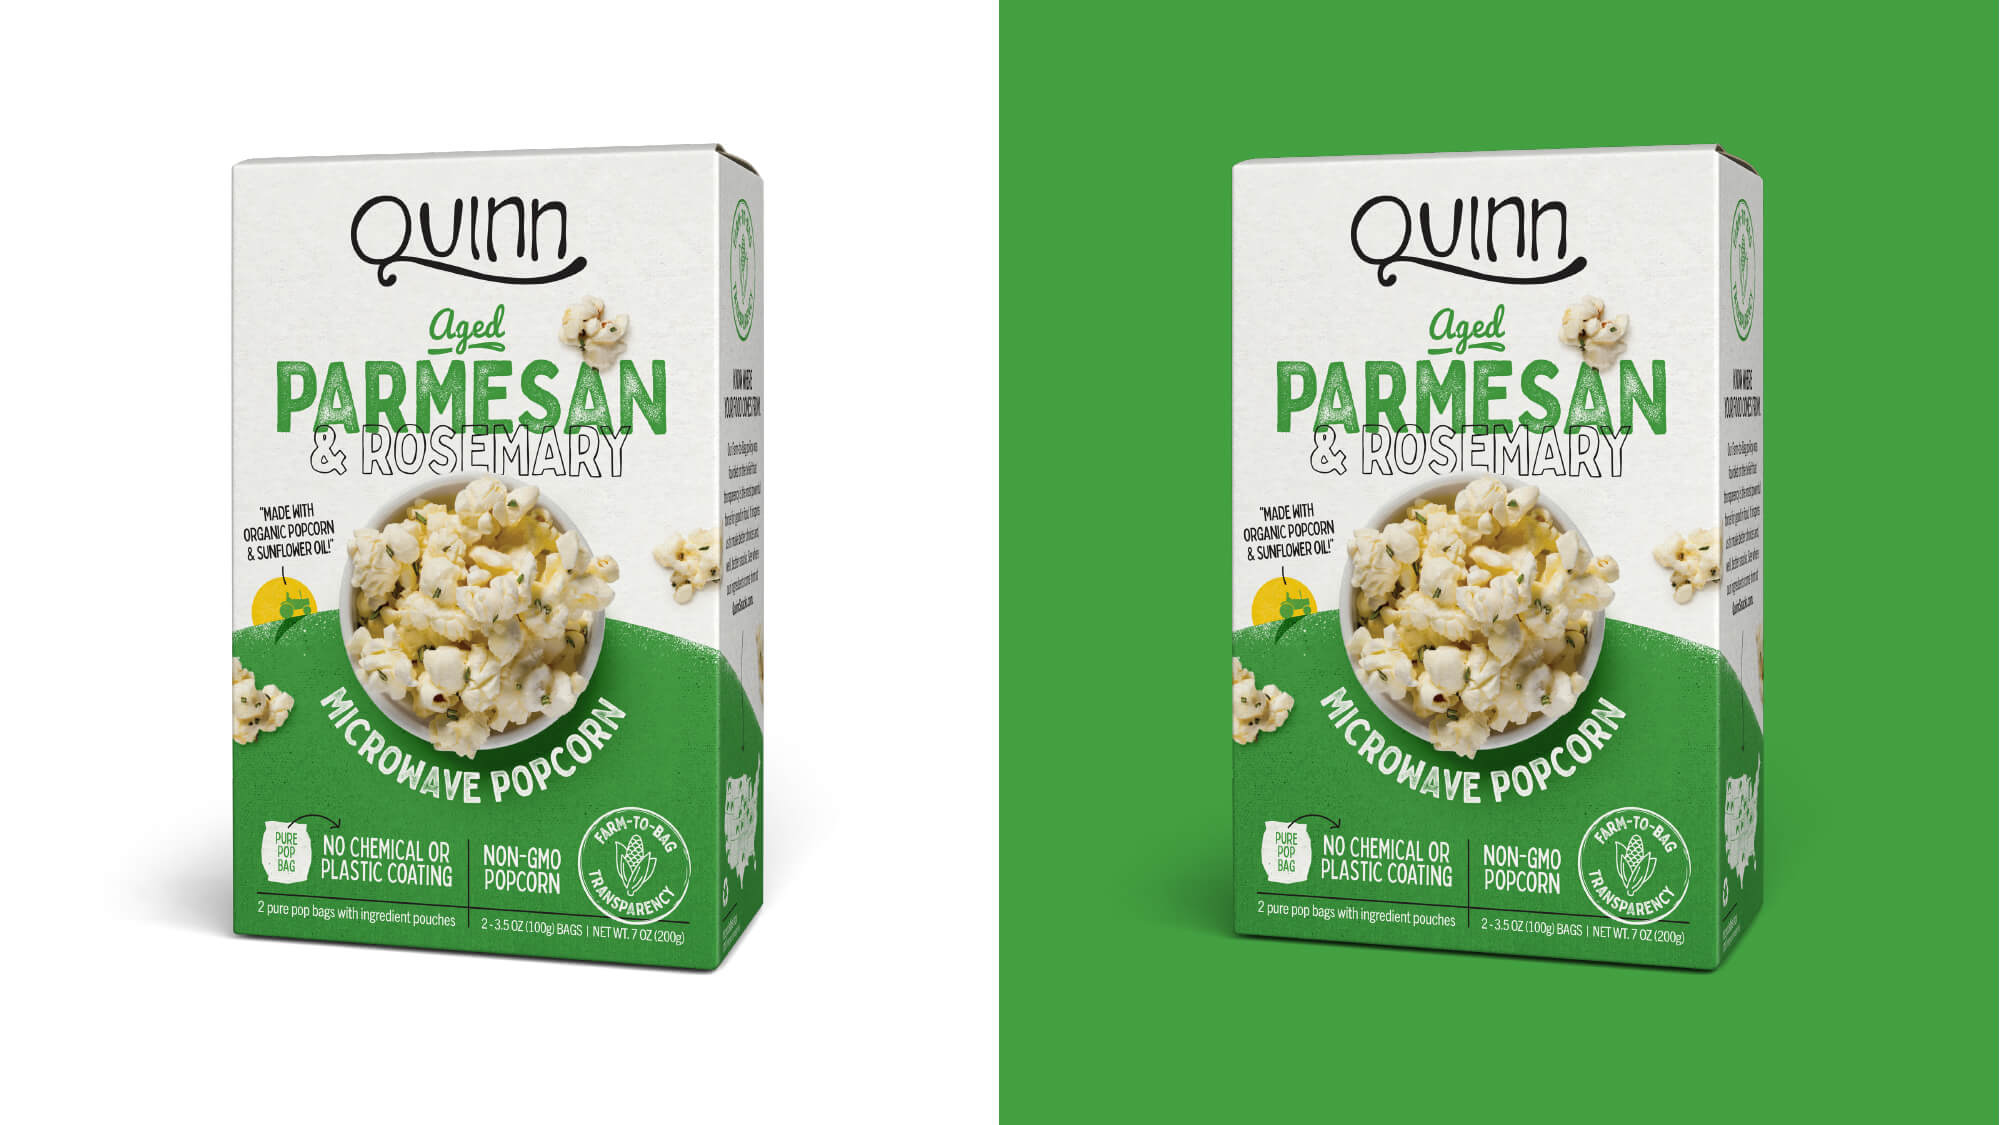 Quinn Popcorn Packaging - Aged Parmesan & Rosemary